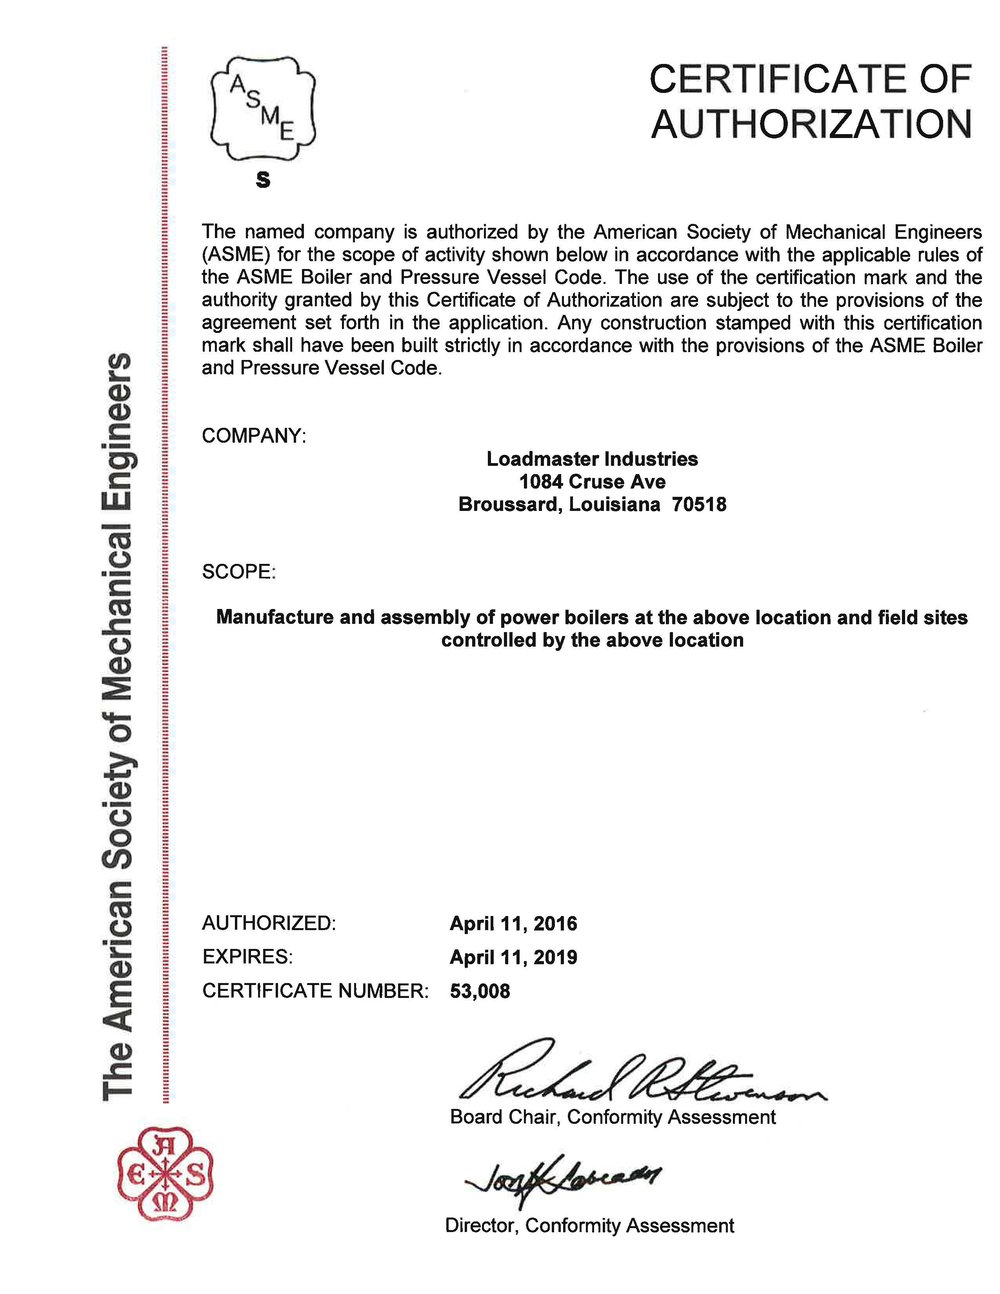 ASME Certificate of Authorization- Power Boilers.jpg